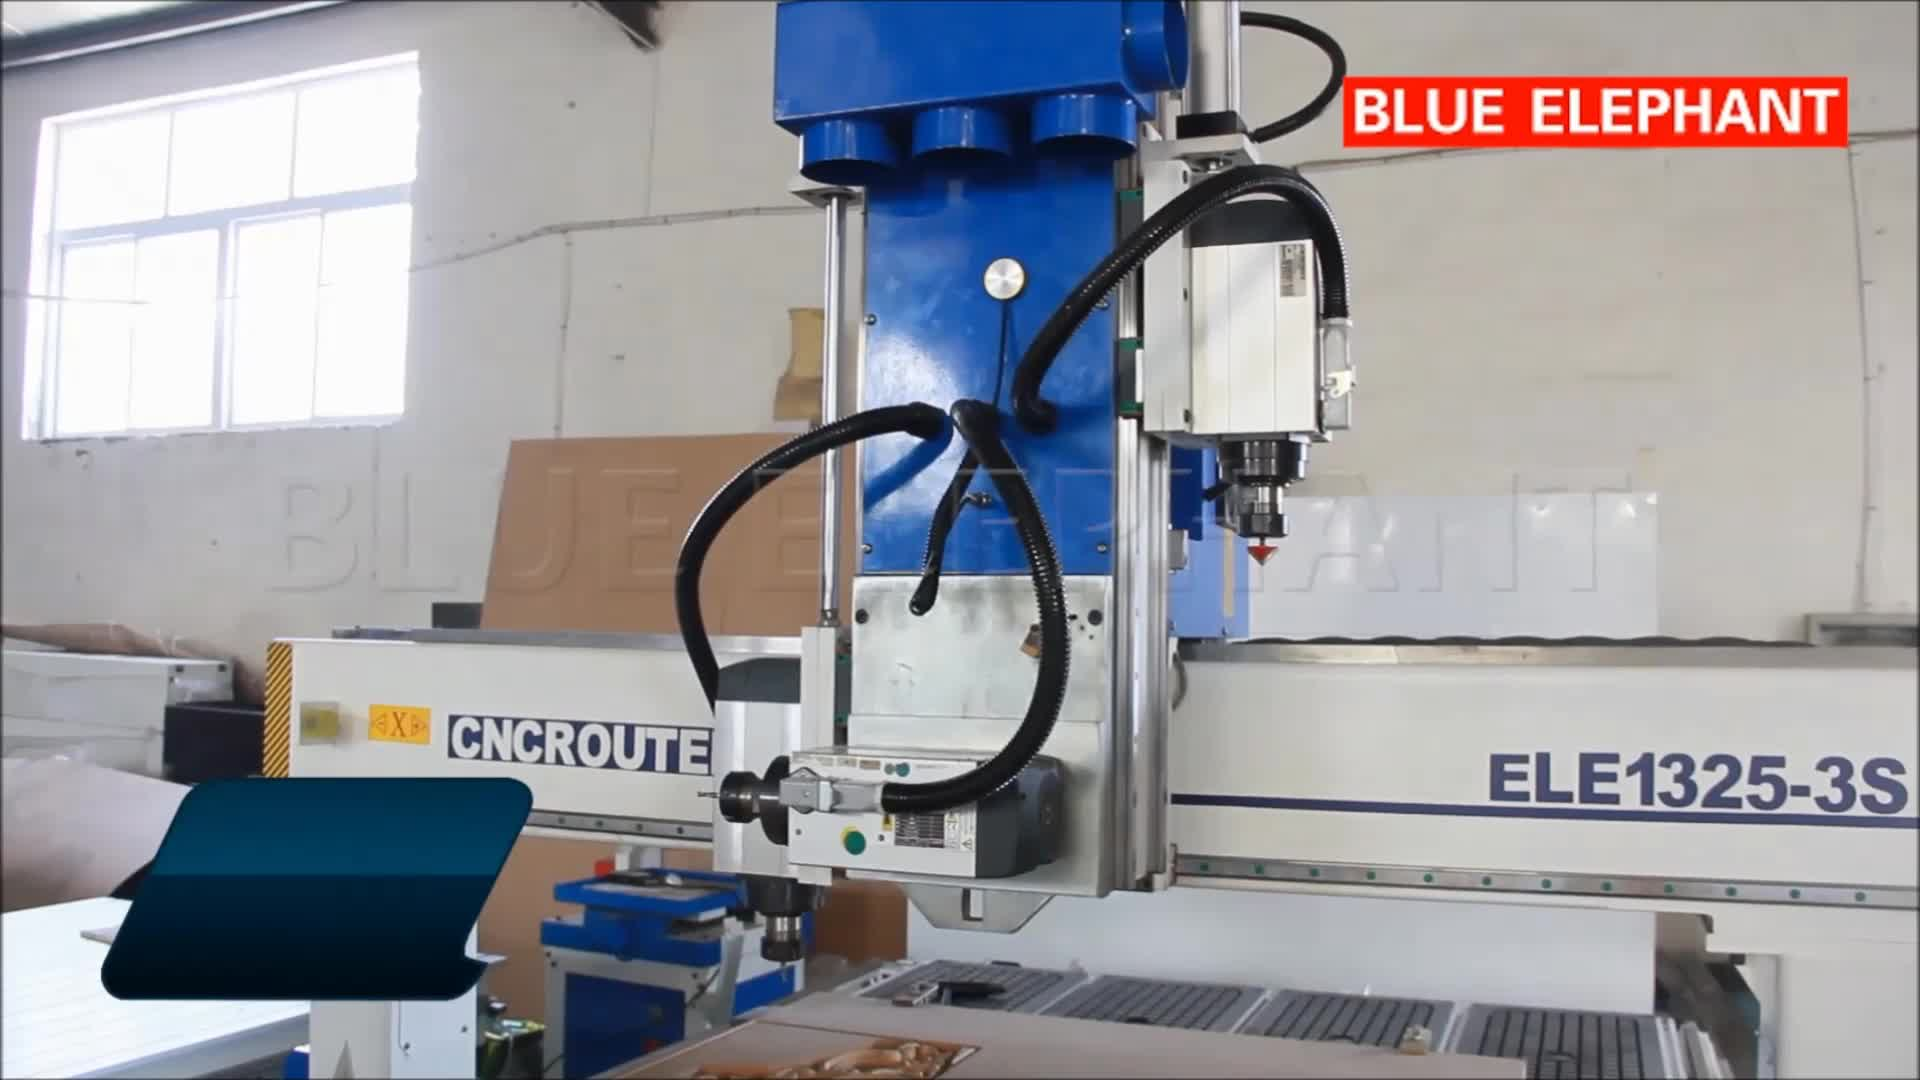 1325 Pneumatic System 3 Spindle , Multi Head Cnc Atc 1325 , 3D Wood Carving Router Machine 4 Axis with Balance Cylinder